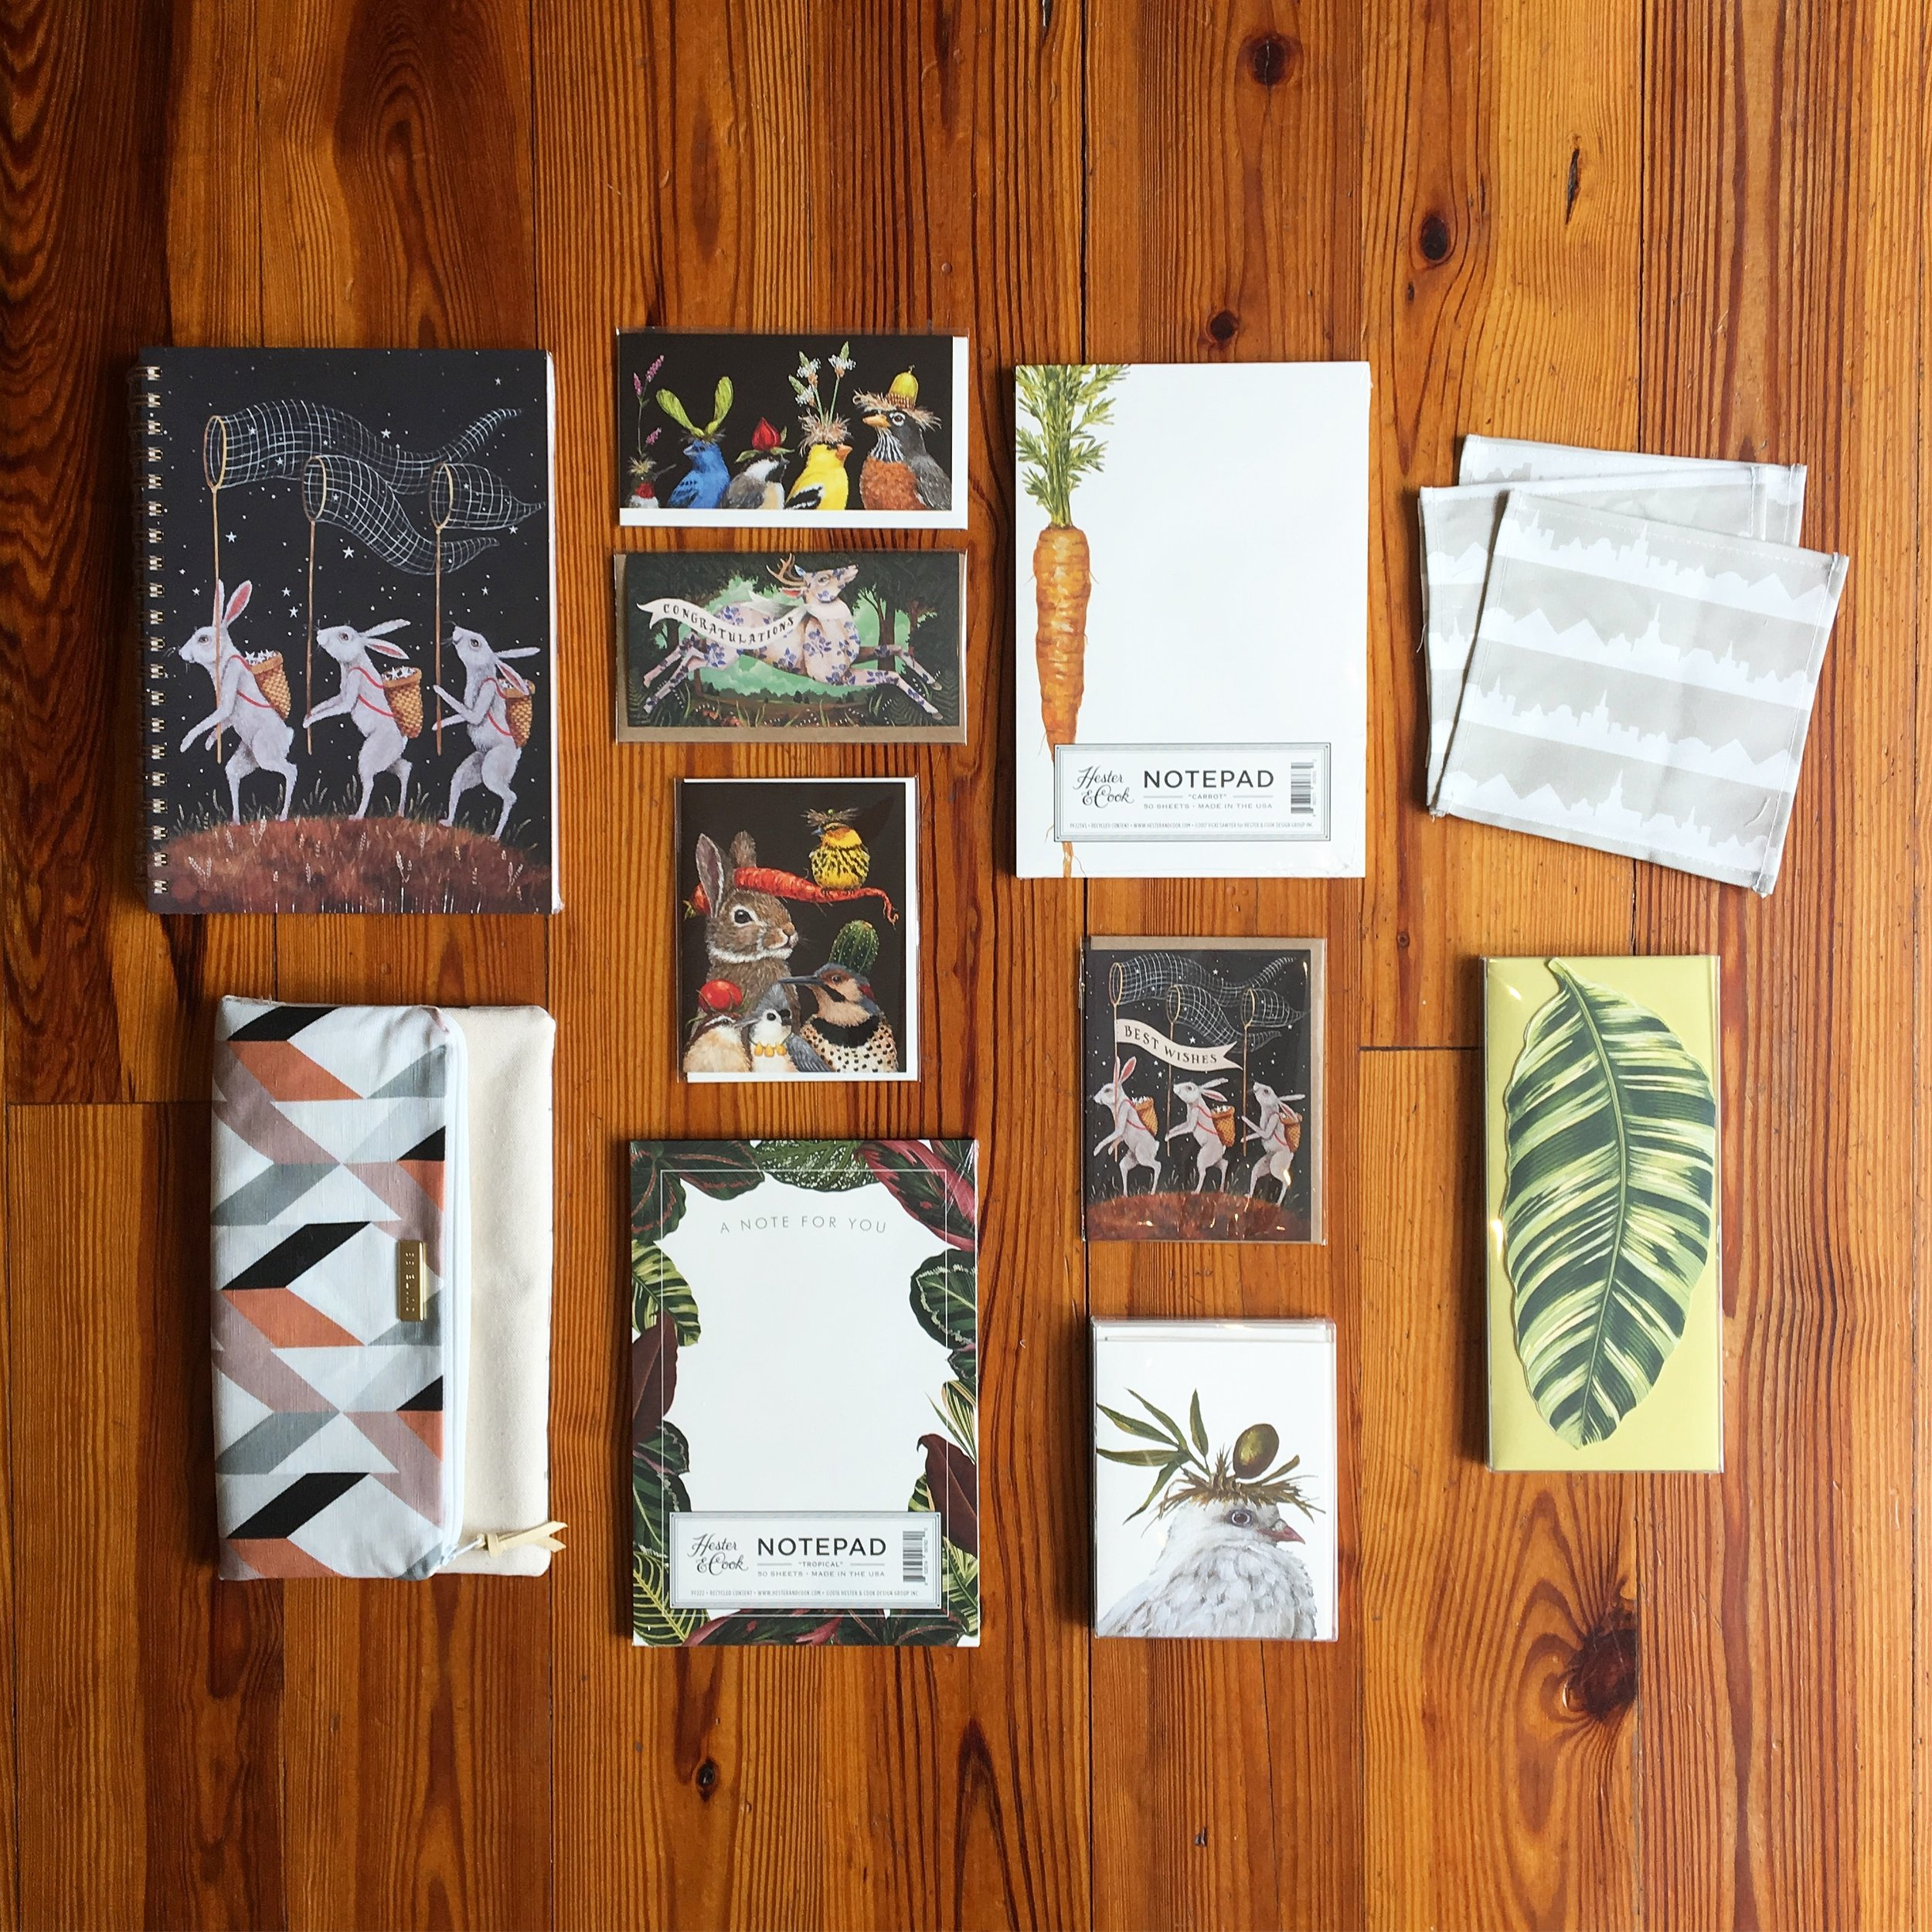 Various Papergoods - Journals, cards, notepads, etc. Contact the gallery to see what's in stock!